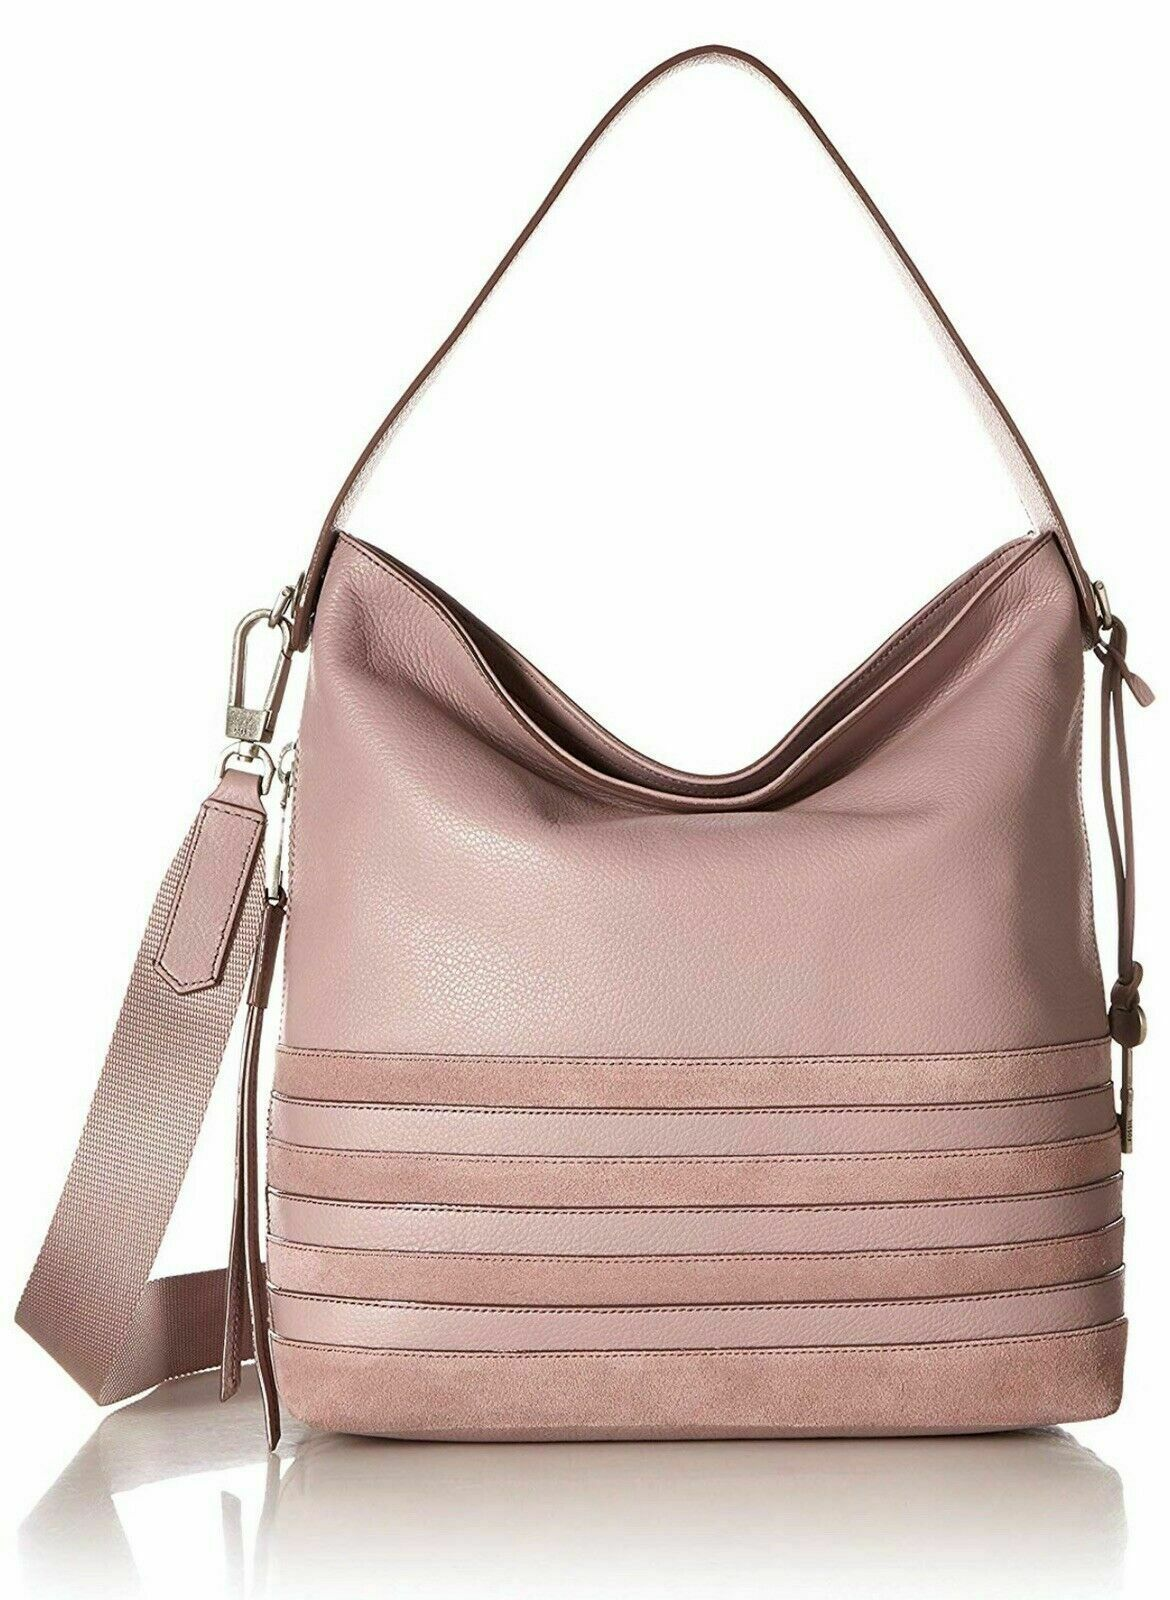 New Fossil Women's Maya Small Leather Hobo Bag Variety Colors